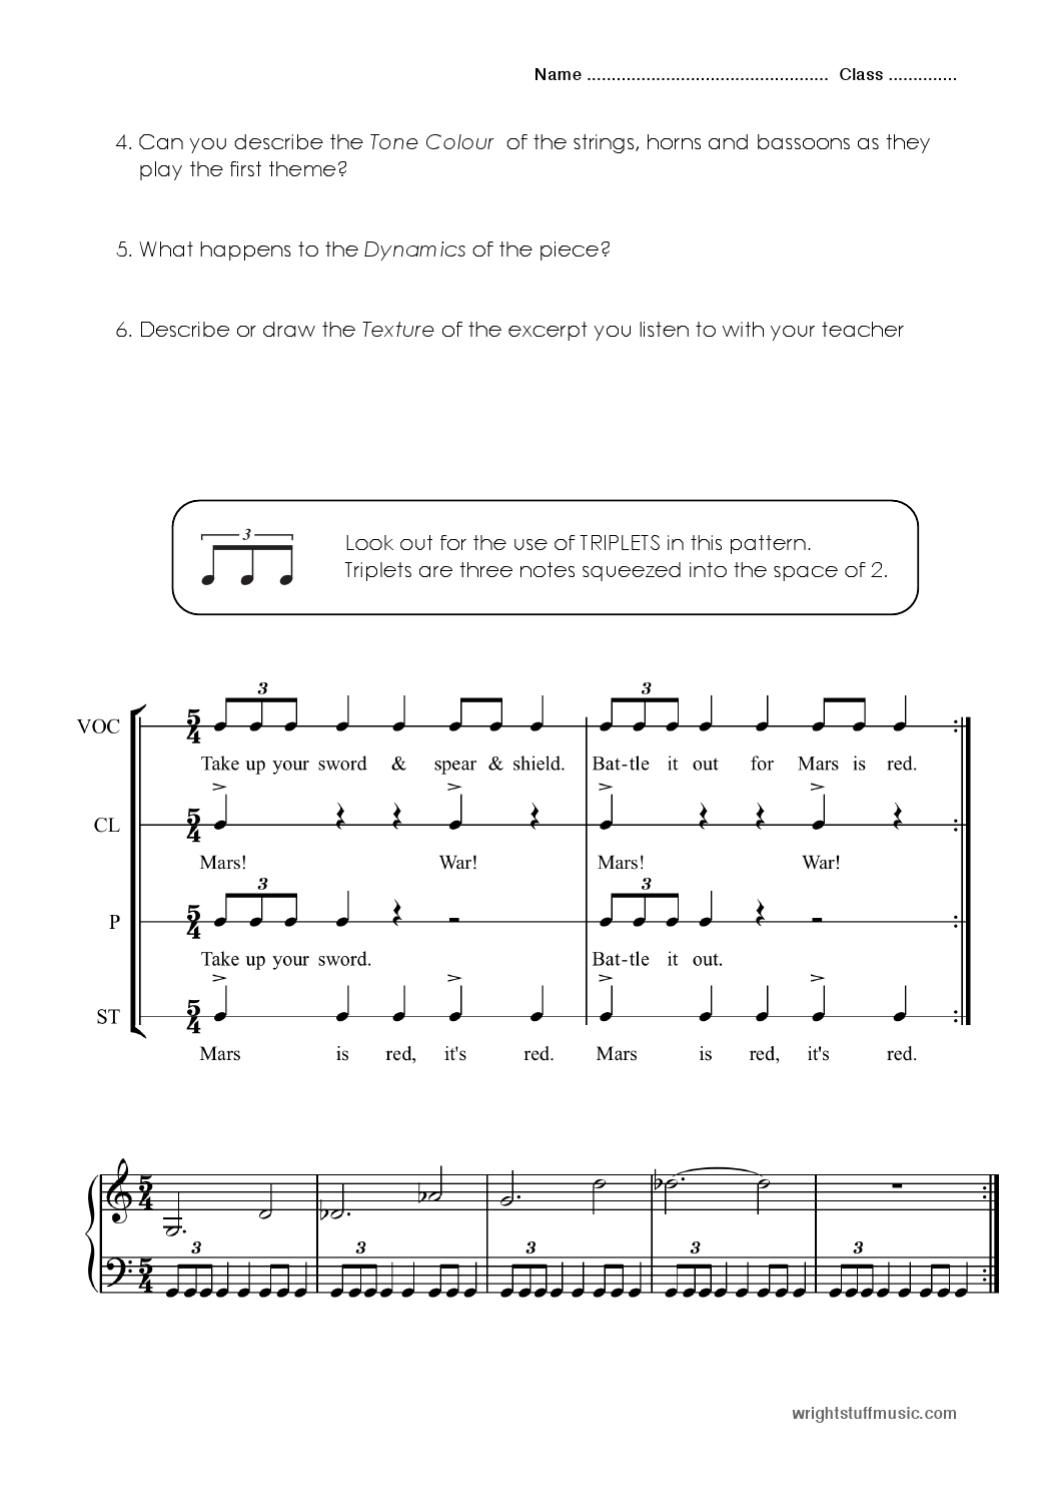 Worksheets Music Composer Worksheets Cheatslist Free